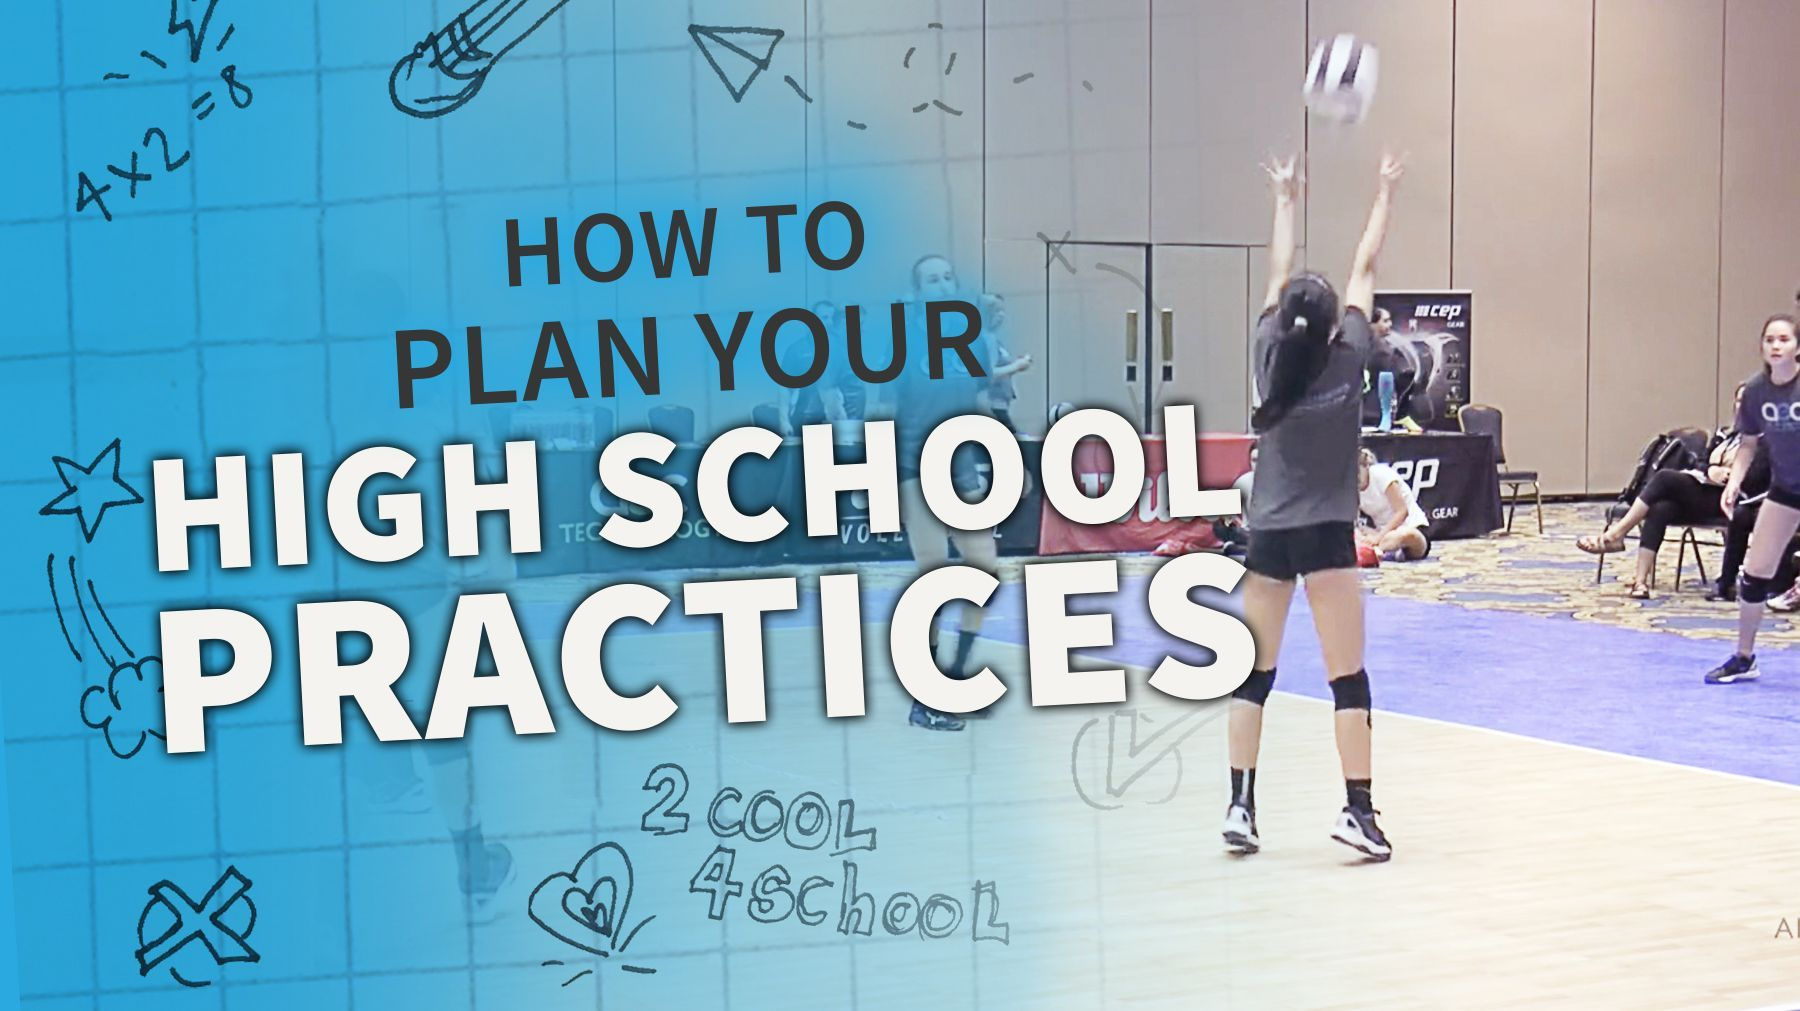 How To Plan Your High School Practices The Art Of Coaching Volleyball Coaching Volleyball Volleyball Practice Plans Volleyball Practice